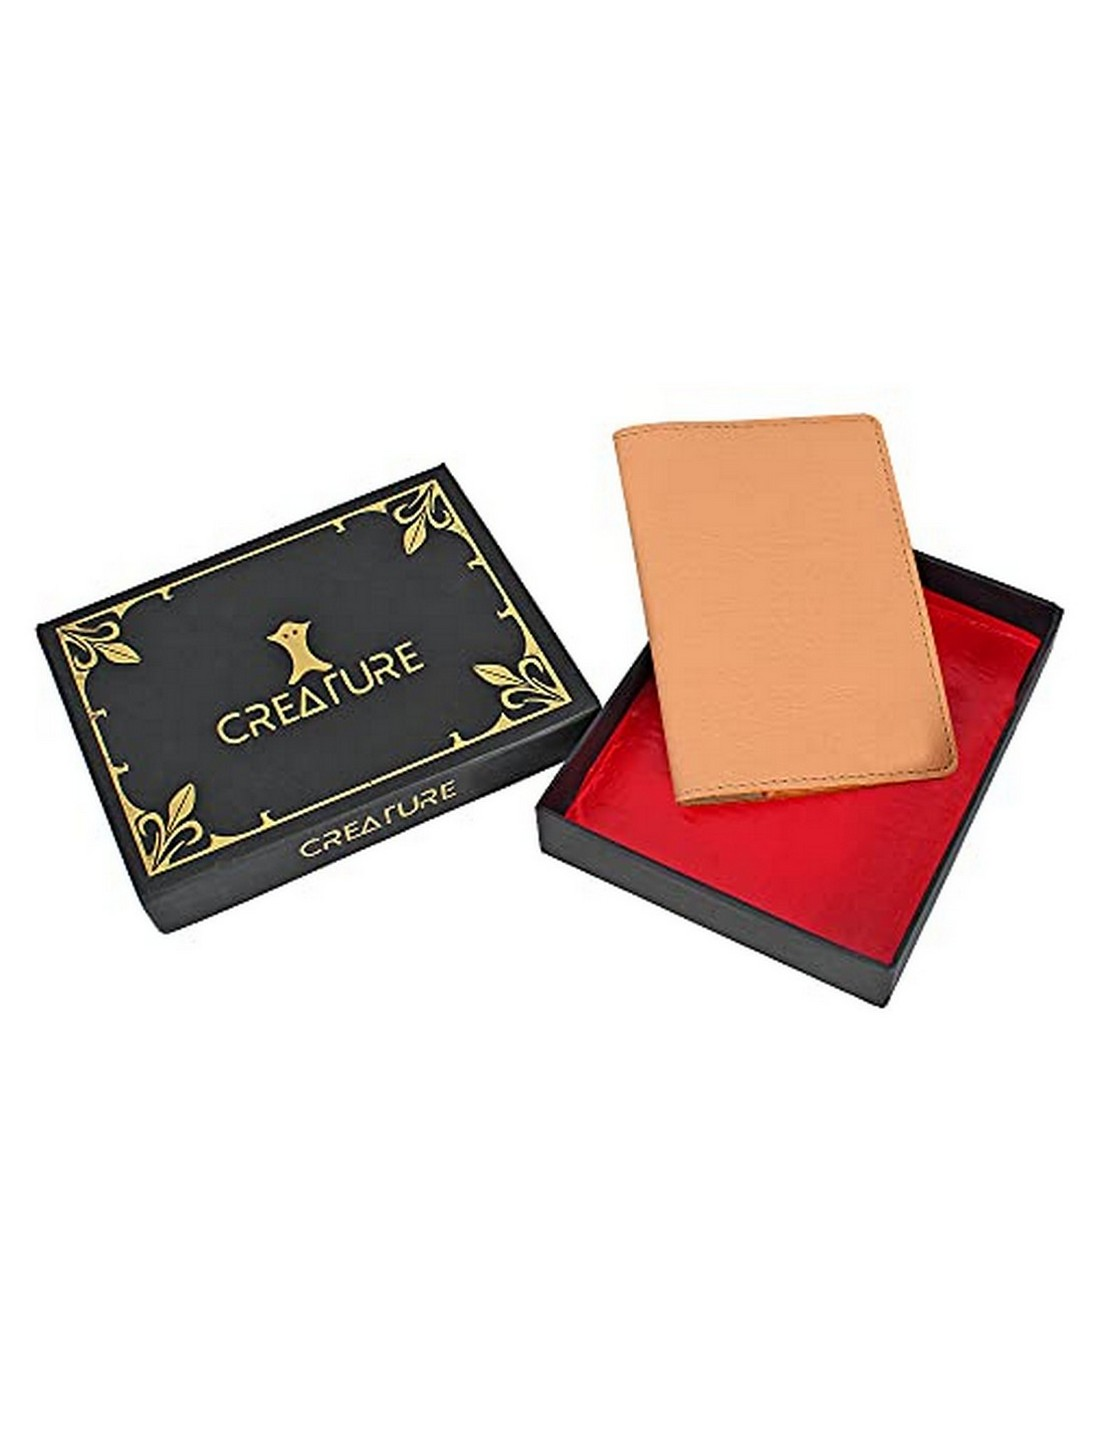 CREATURE | CREATURE Universal Long Travel Kit Passport Holder & Wallet with ID-Window for women